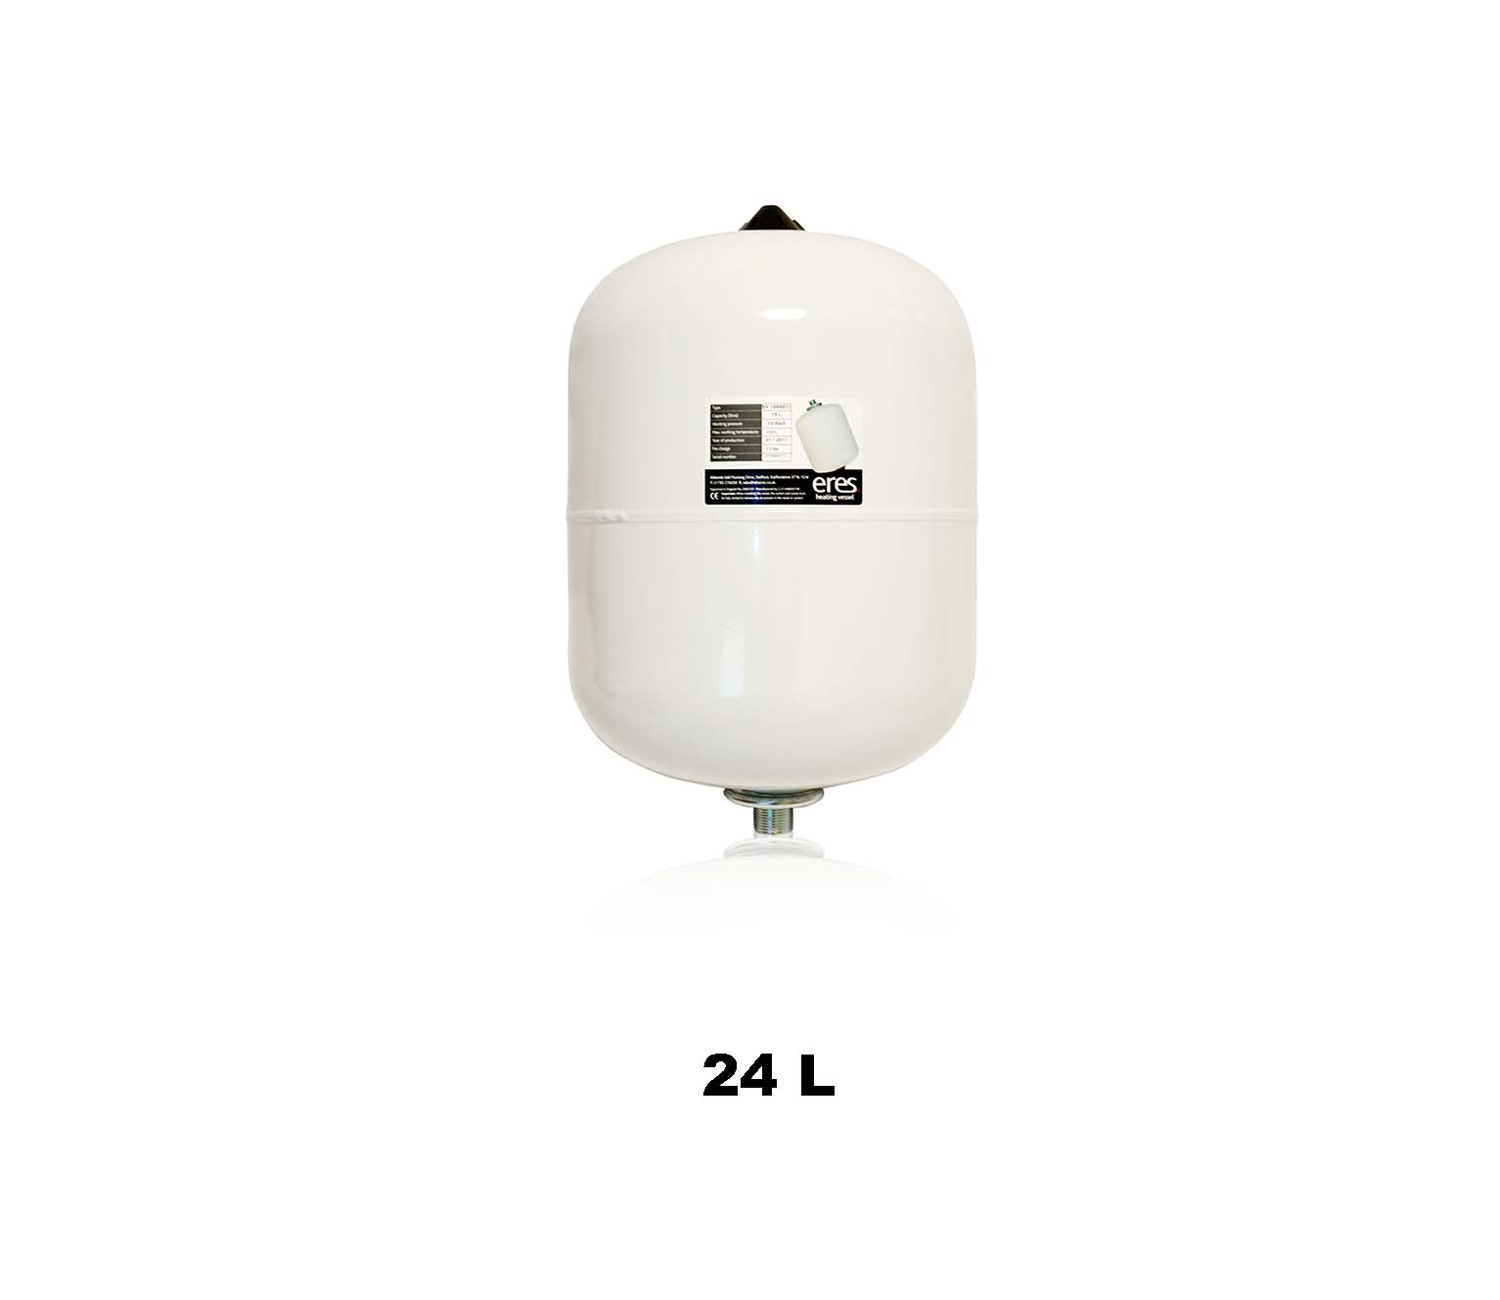 Solar expansion Vessel 24 L high temp